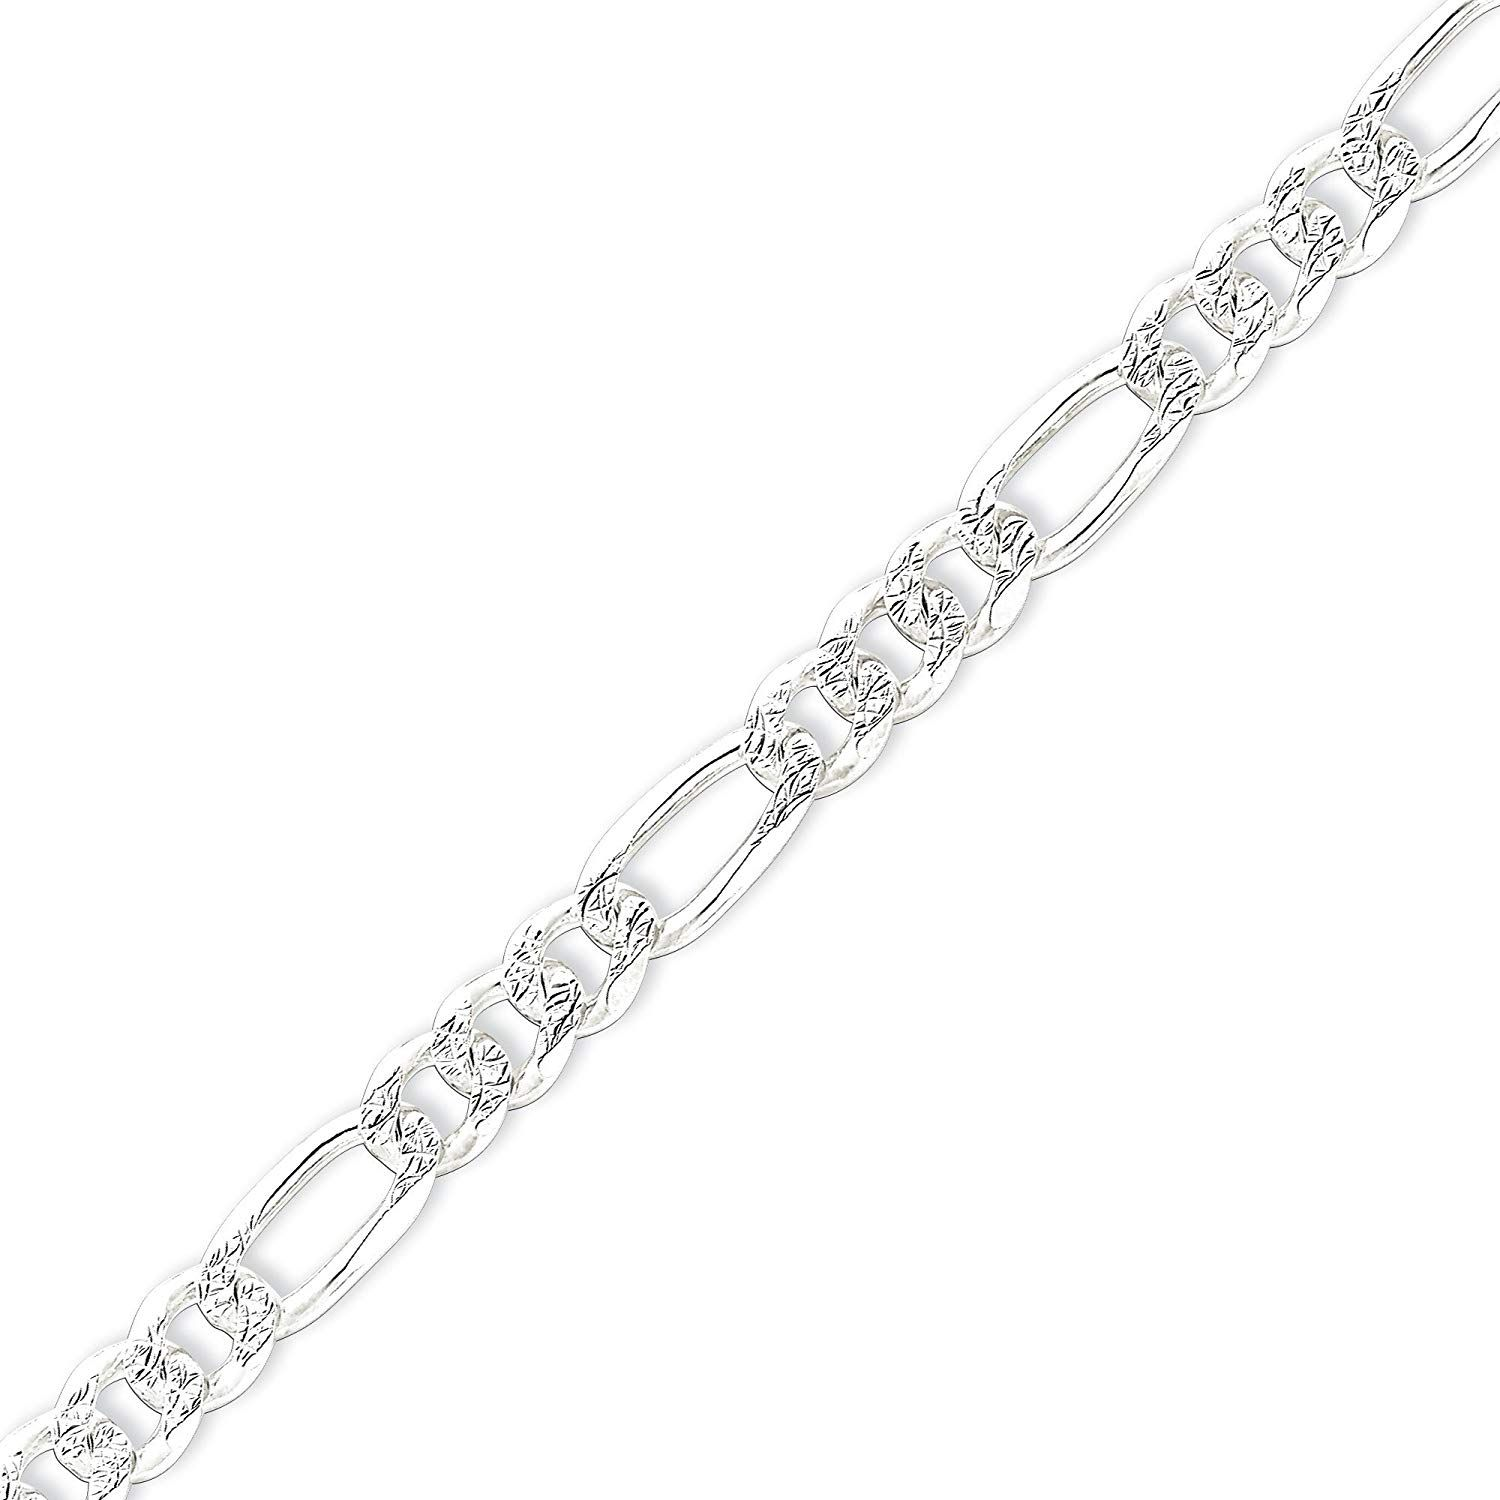 25 2mm thick 14k gold plated on solid sterling silver 925 Italian diamond cut FLAT CURB link chain necklace bracelet anklet 95 40 15 70 50 100cm 30 80 60 85 90 75 20 35 65 45 55